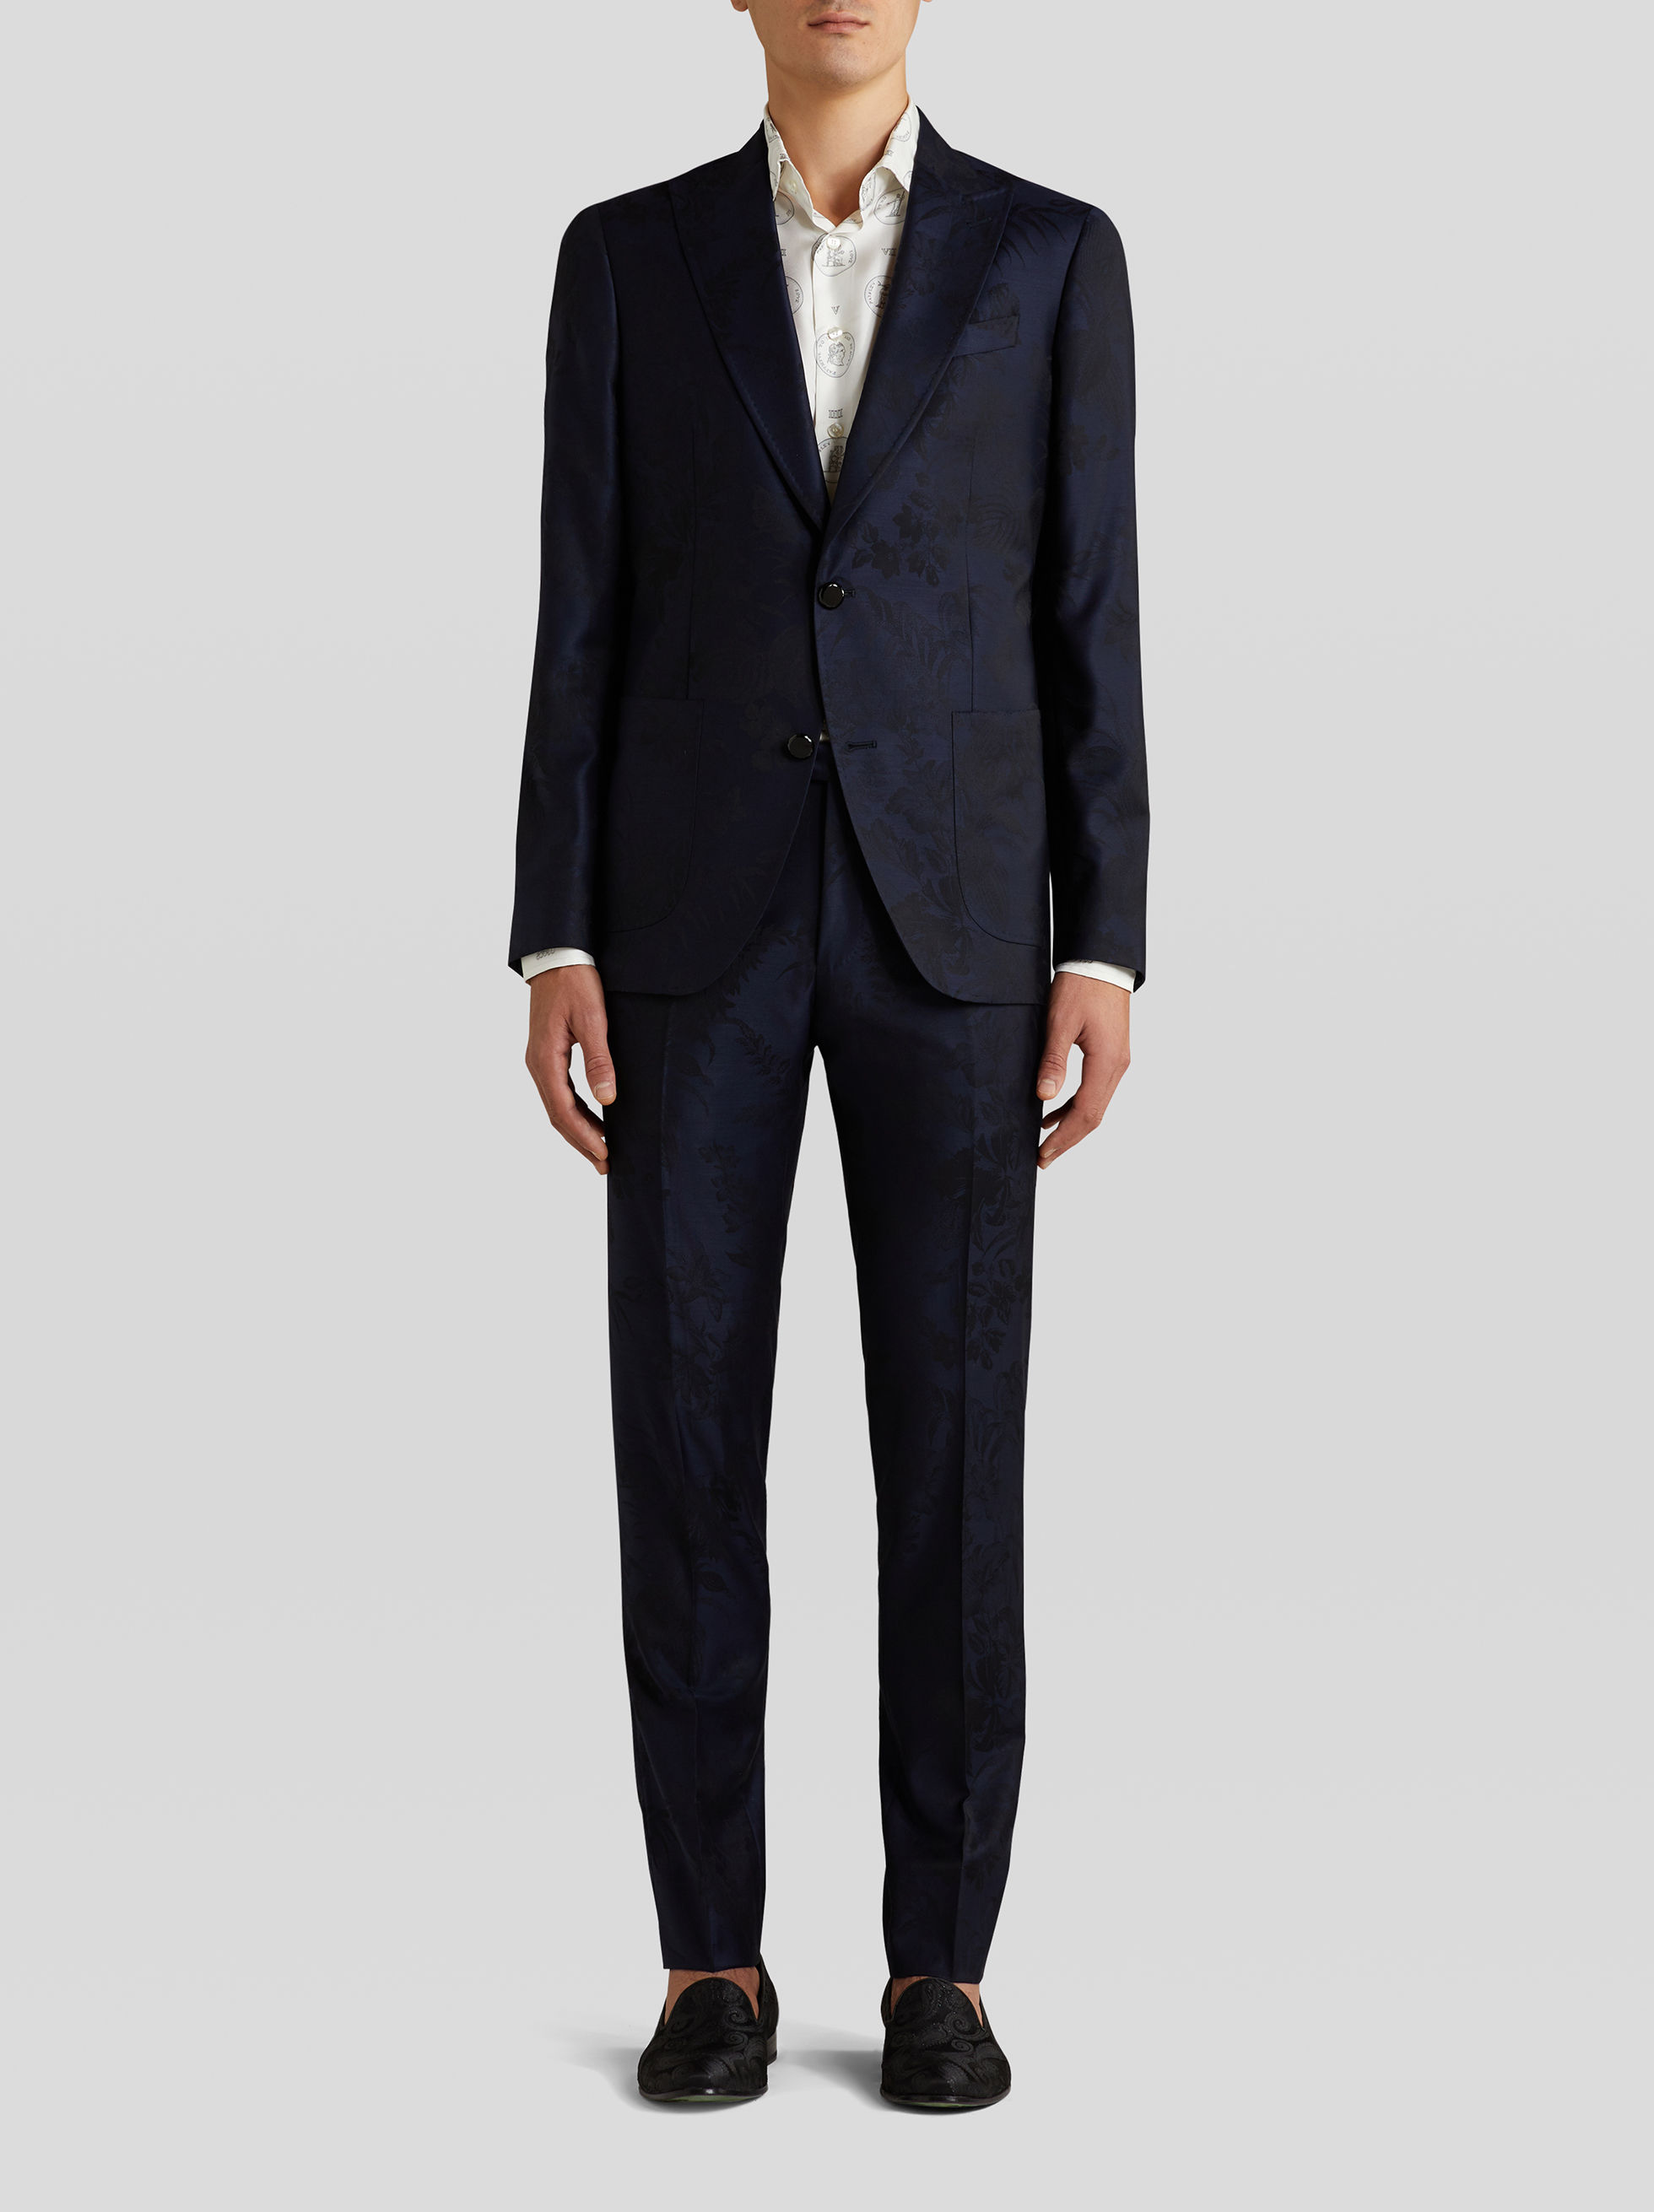 TAILORED WOOL SUIT IN JACQUARD